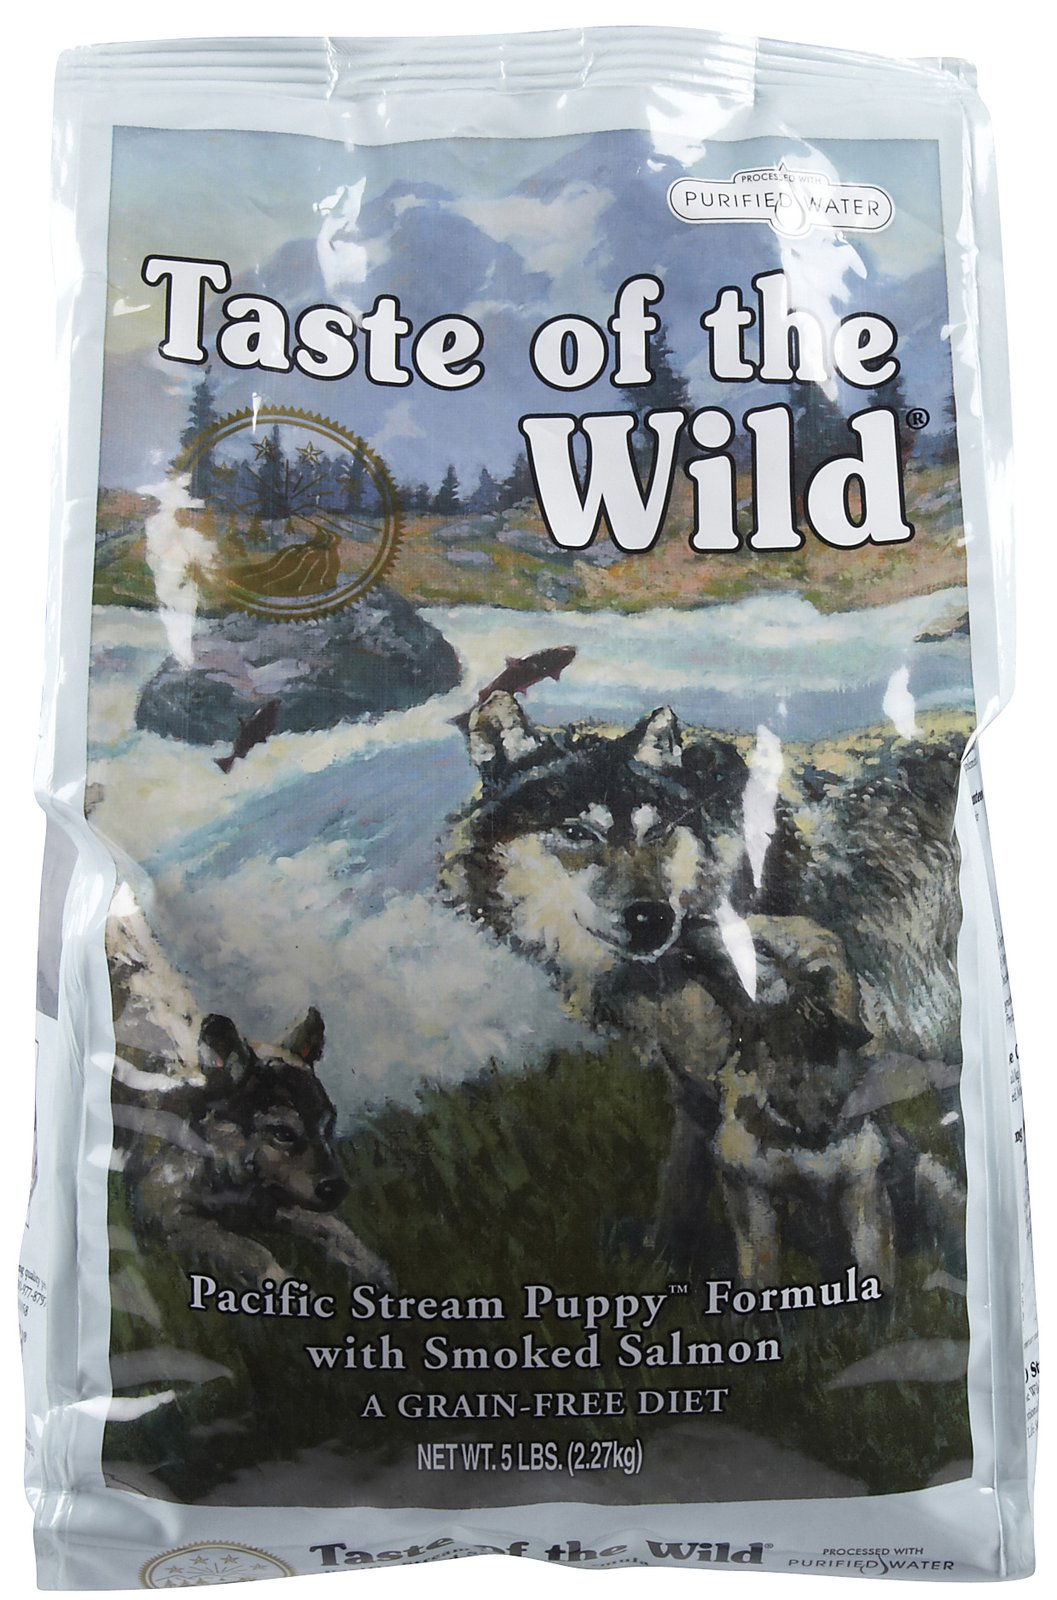 Taste of the Wild Pacific Stream Puppy Formula Dog Food